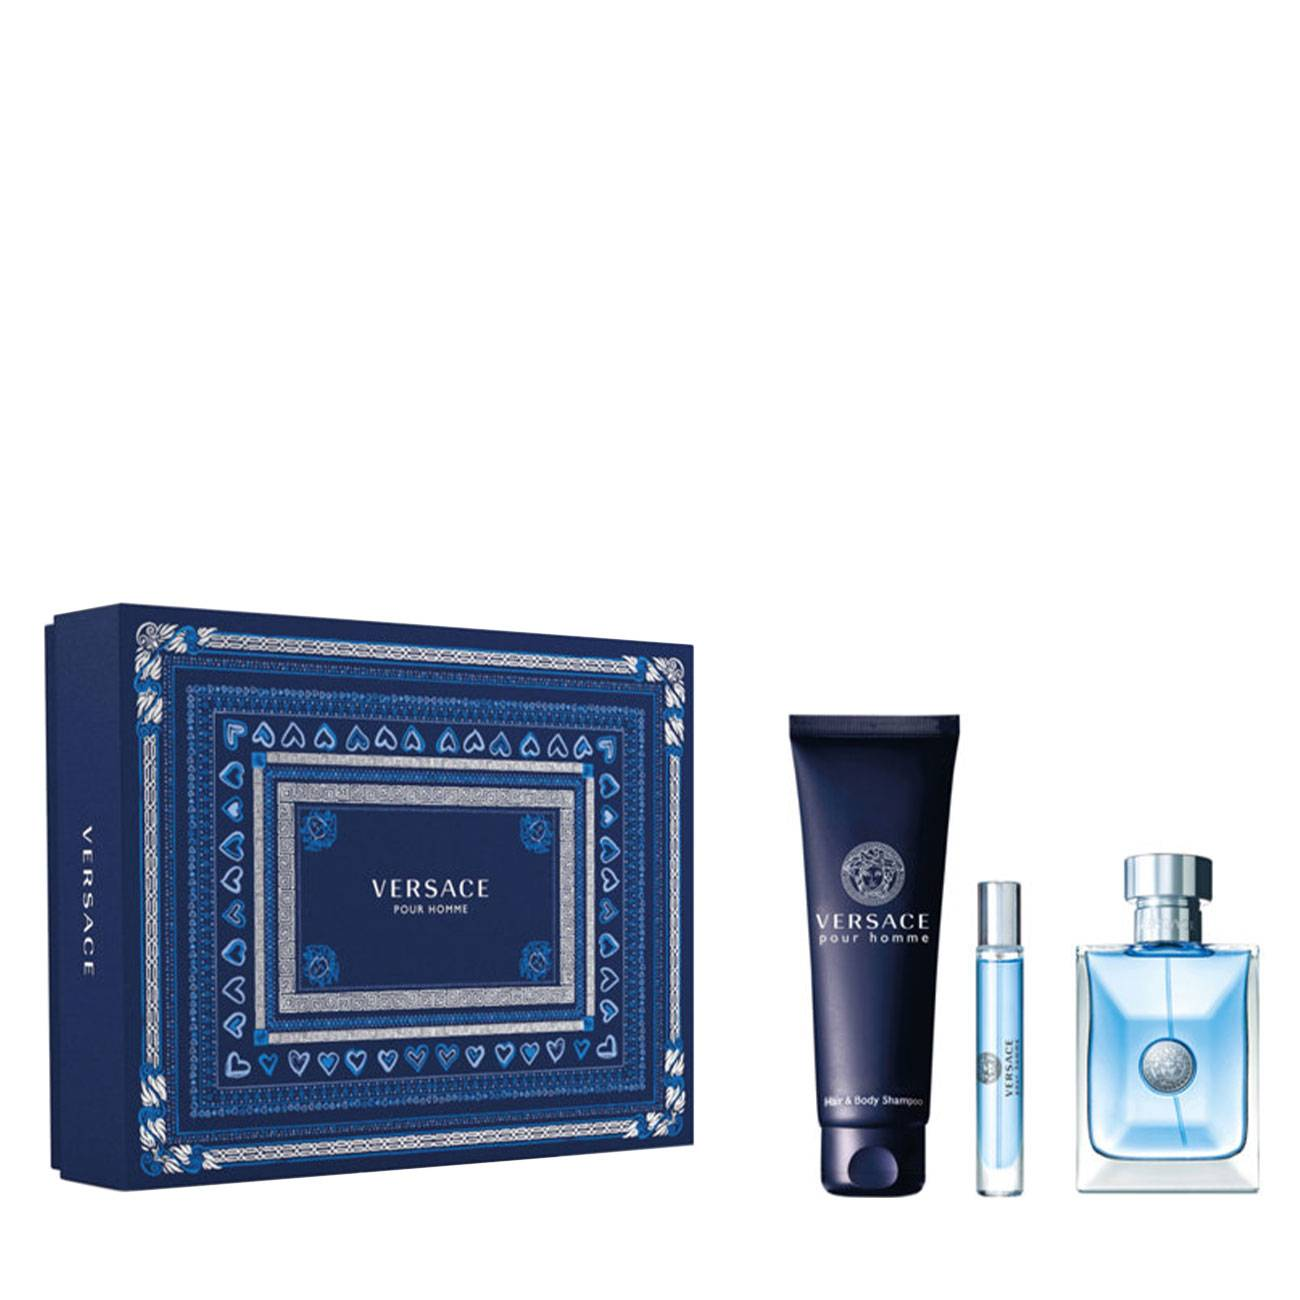 POUR HOMME SET 260ml imagine produs